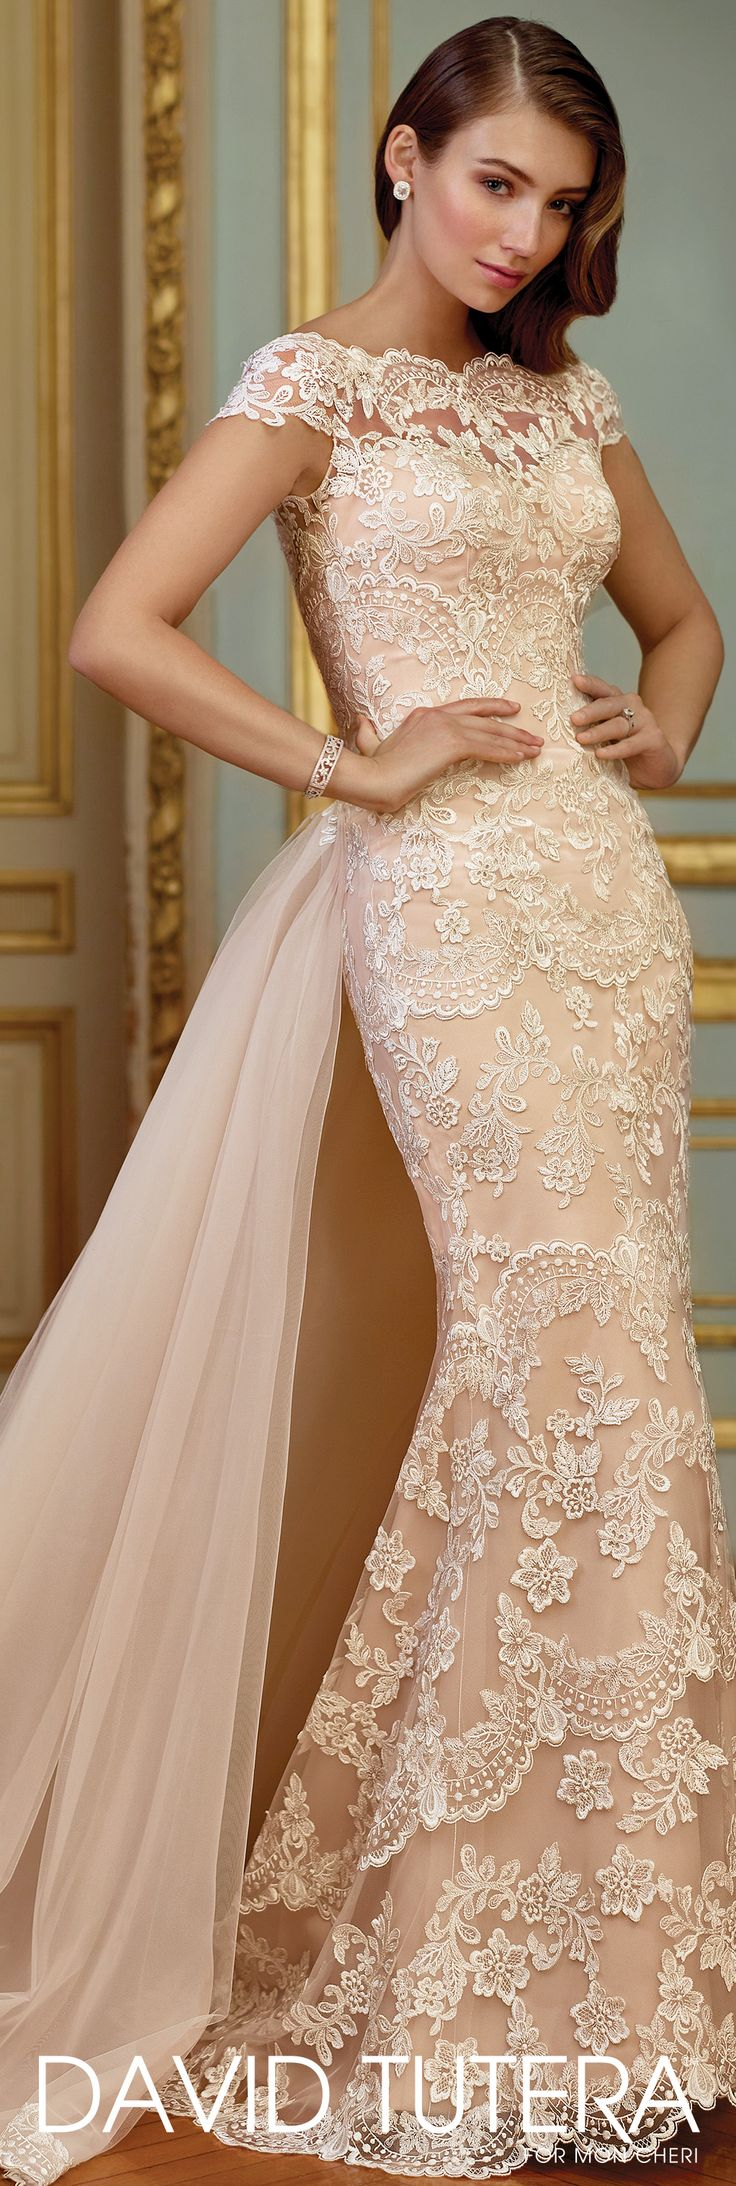 Wedding dress with removable train  Danni Jay dannij on Pinterest